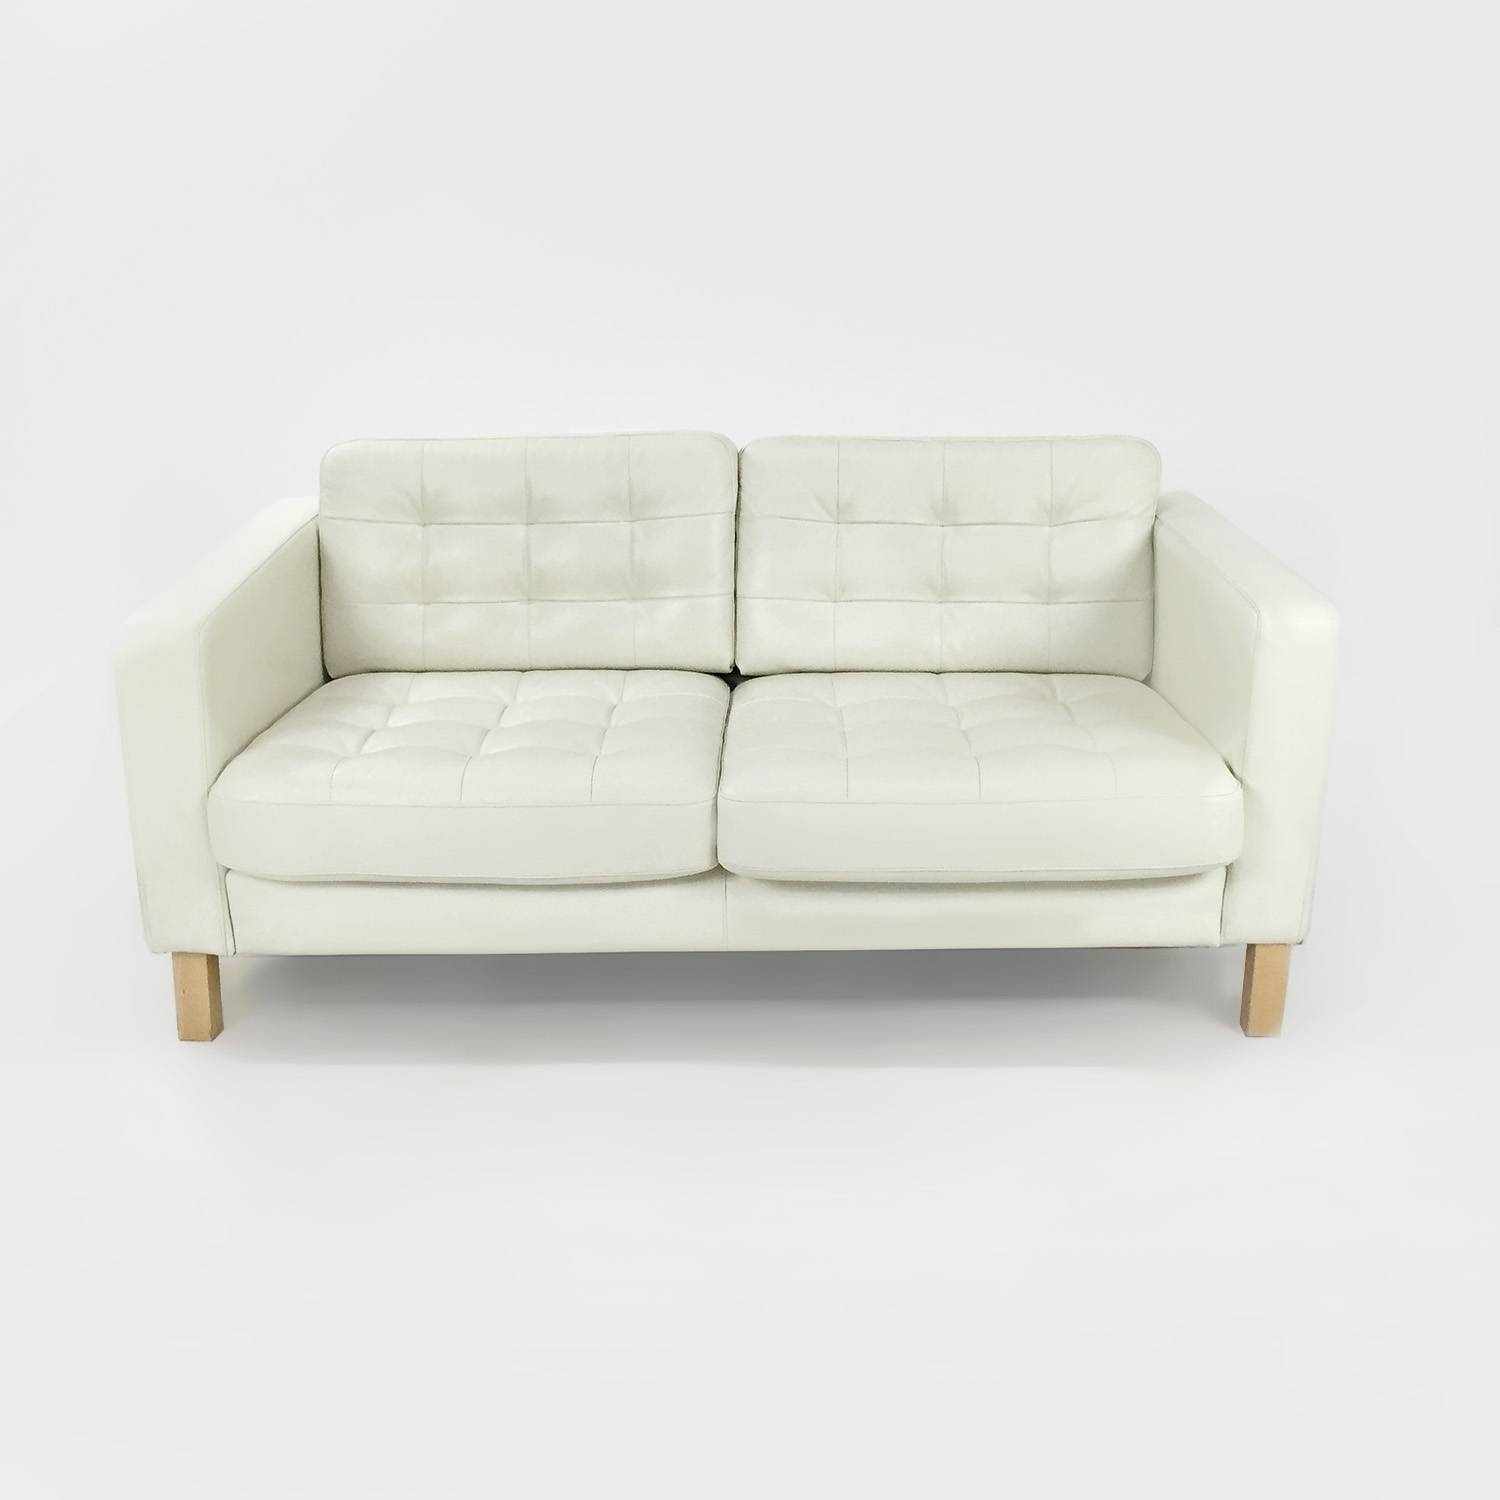 50% Off   Ikea White Leather Couch / Sofas Pertaining To Off White Leather Sofa And Loveseat (Photo 13 of 30)